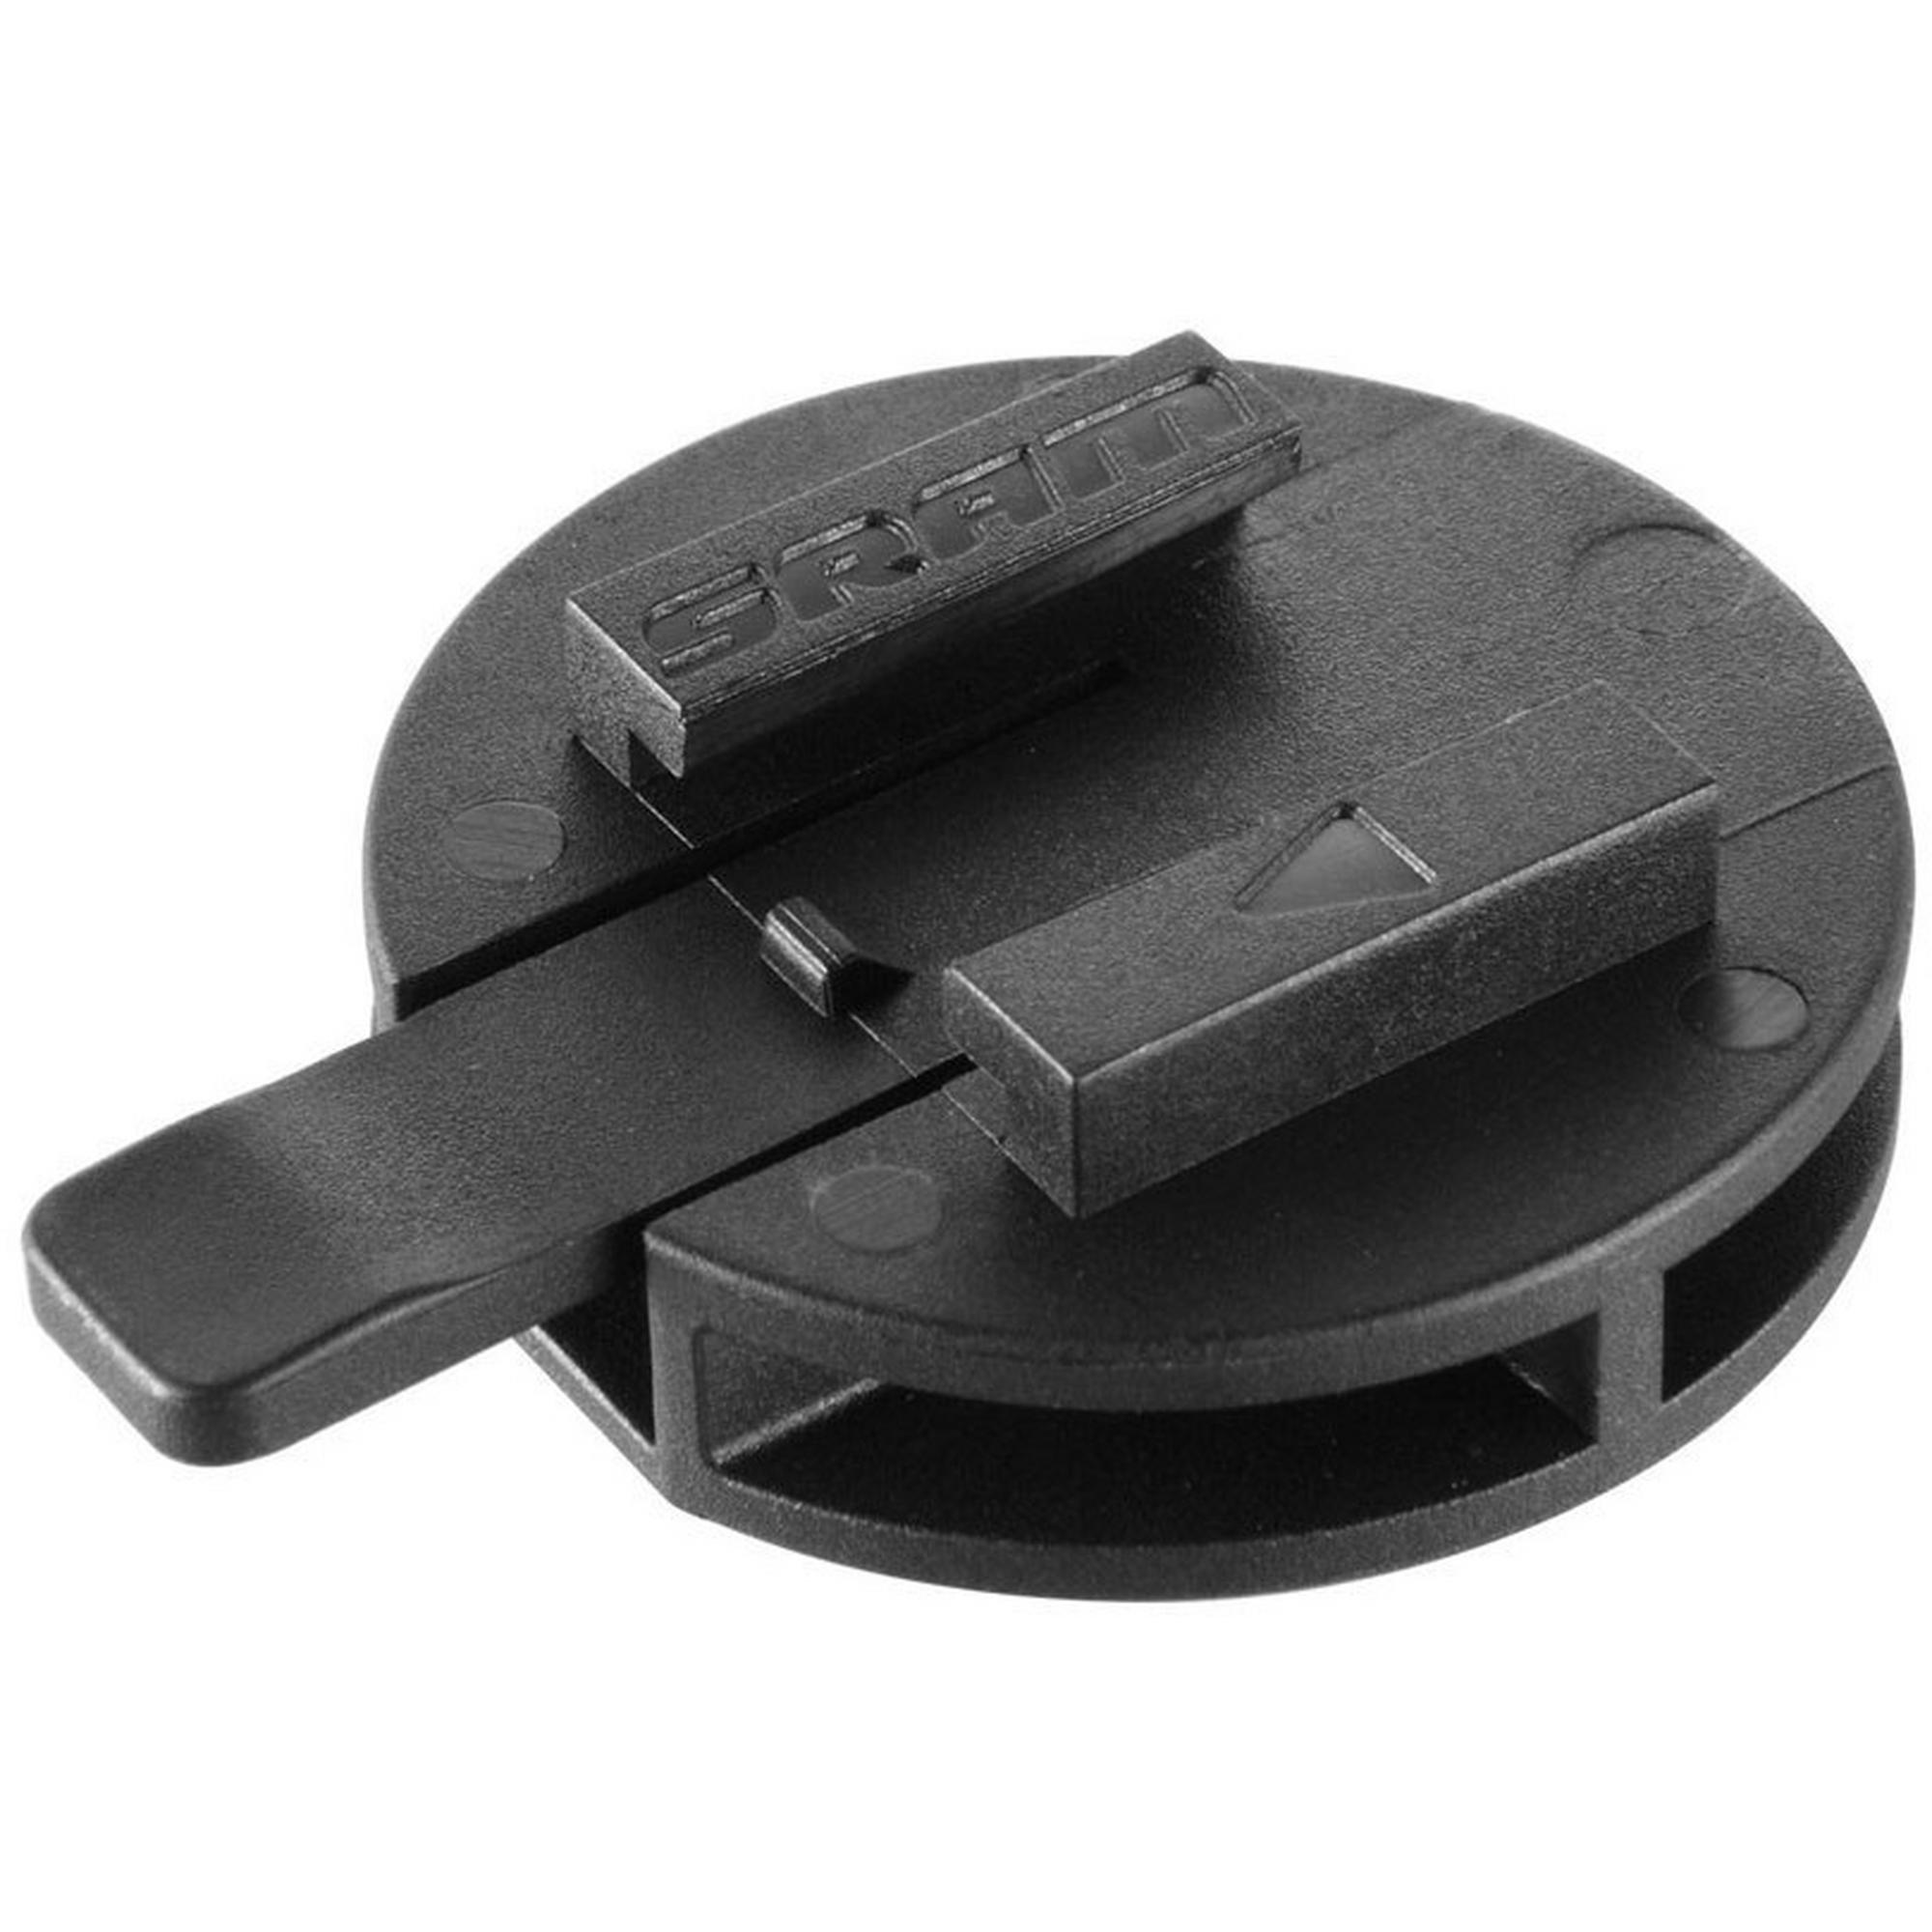 SRAM Quickview Garmin Computer Mount Adaptor | Cykelcomputere